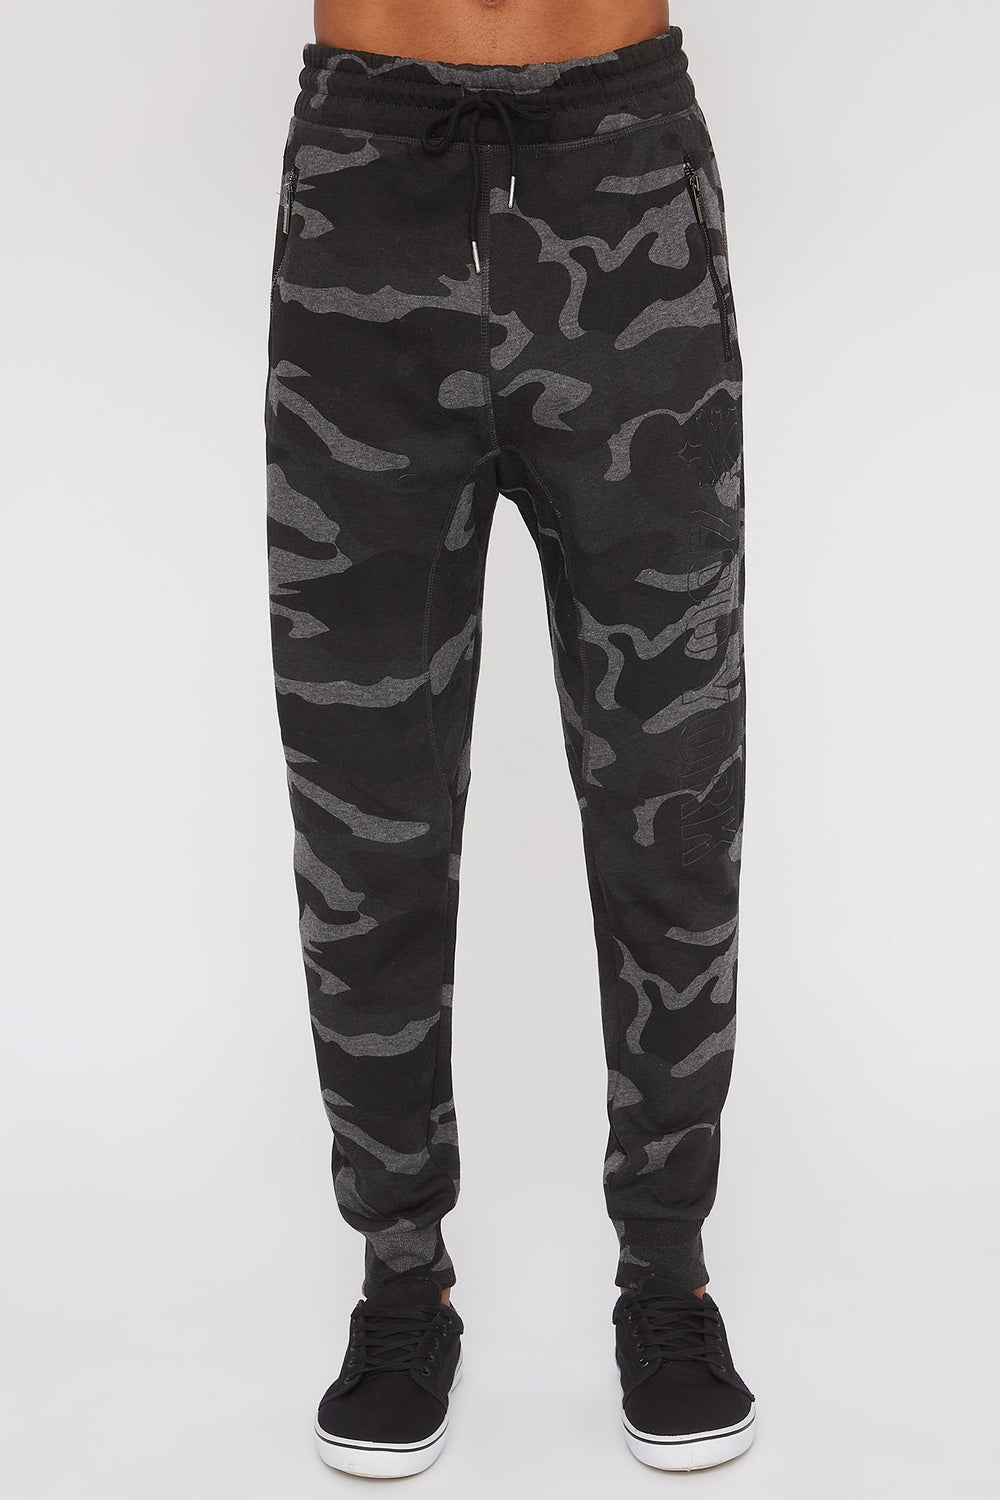 Zoo York Mens 3-Pocket Camo Jogger Black with White